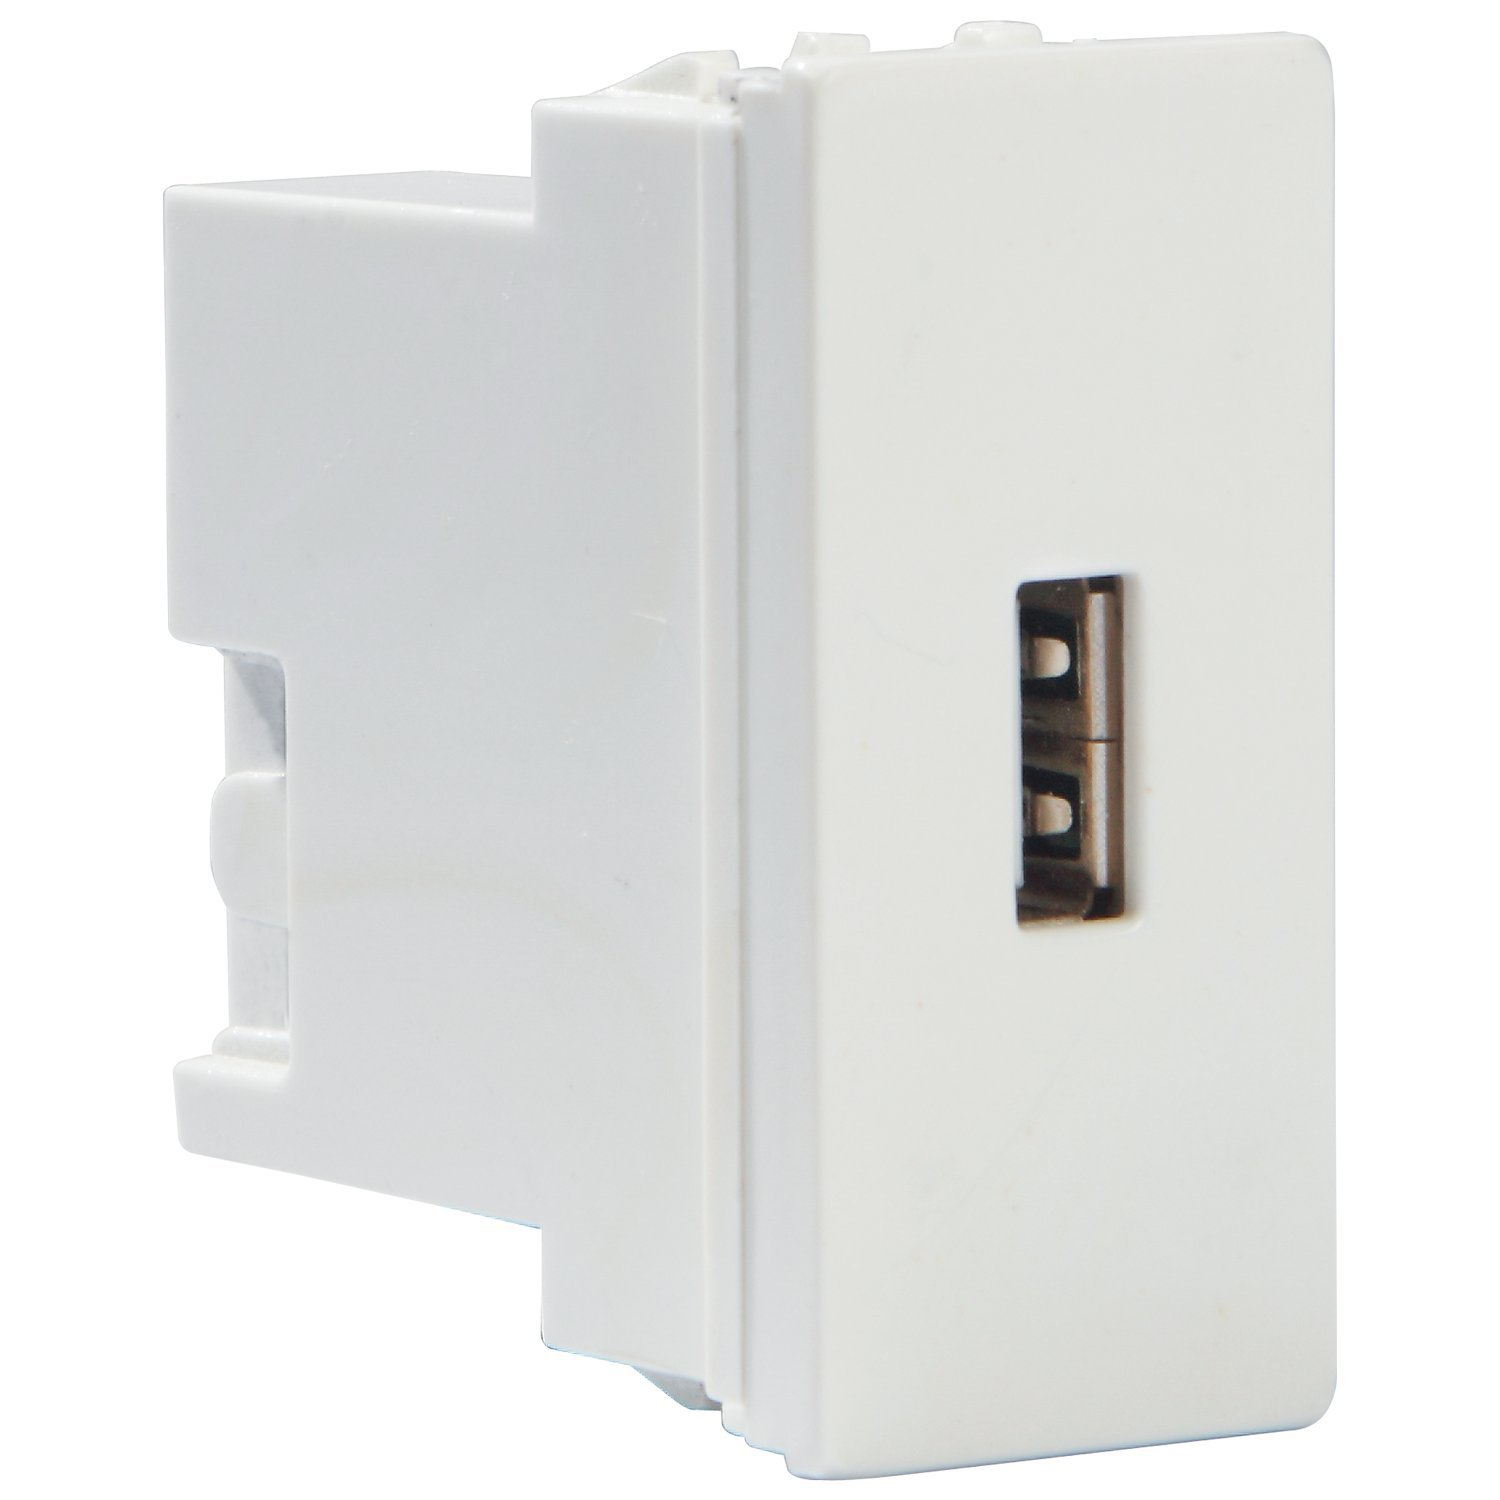 Havells Crabtree Athena Usb Charger Home Improvement Wiring Accessories